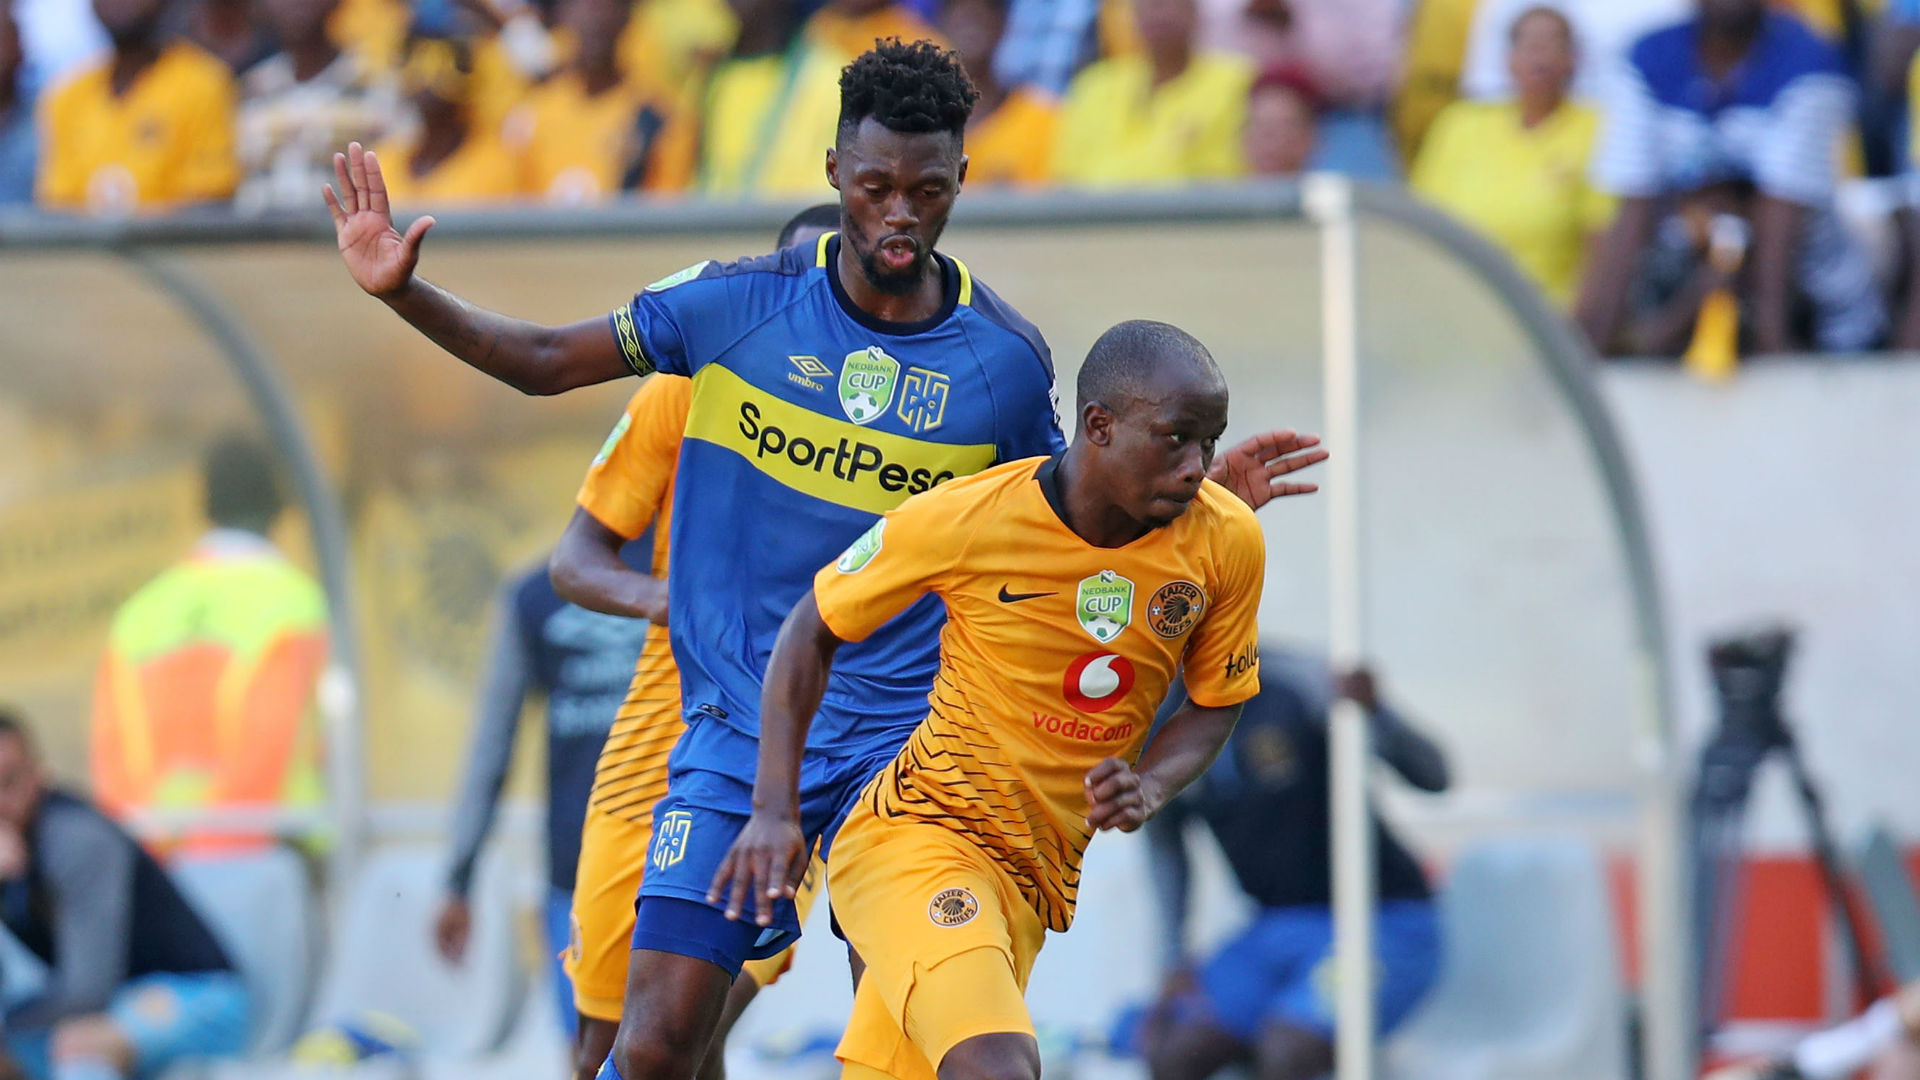 Siphosakhe Ntiya Ntiya of Kaizer Chiefs challenged by Thato Mokeke of Cape Town City, March 2019